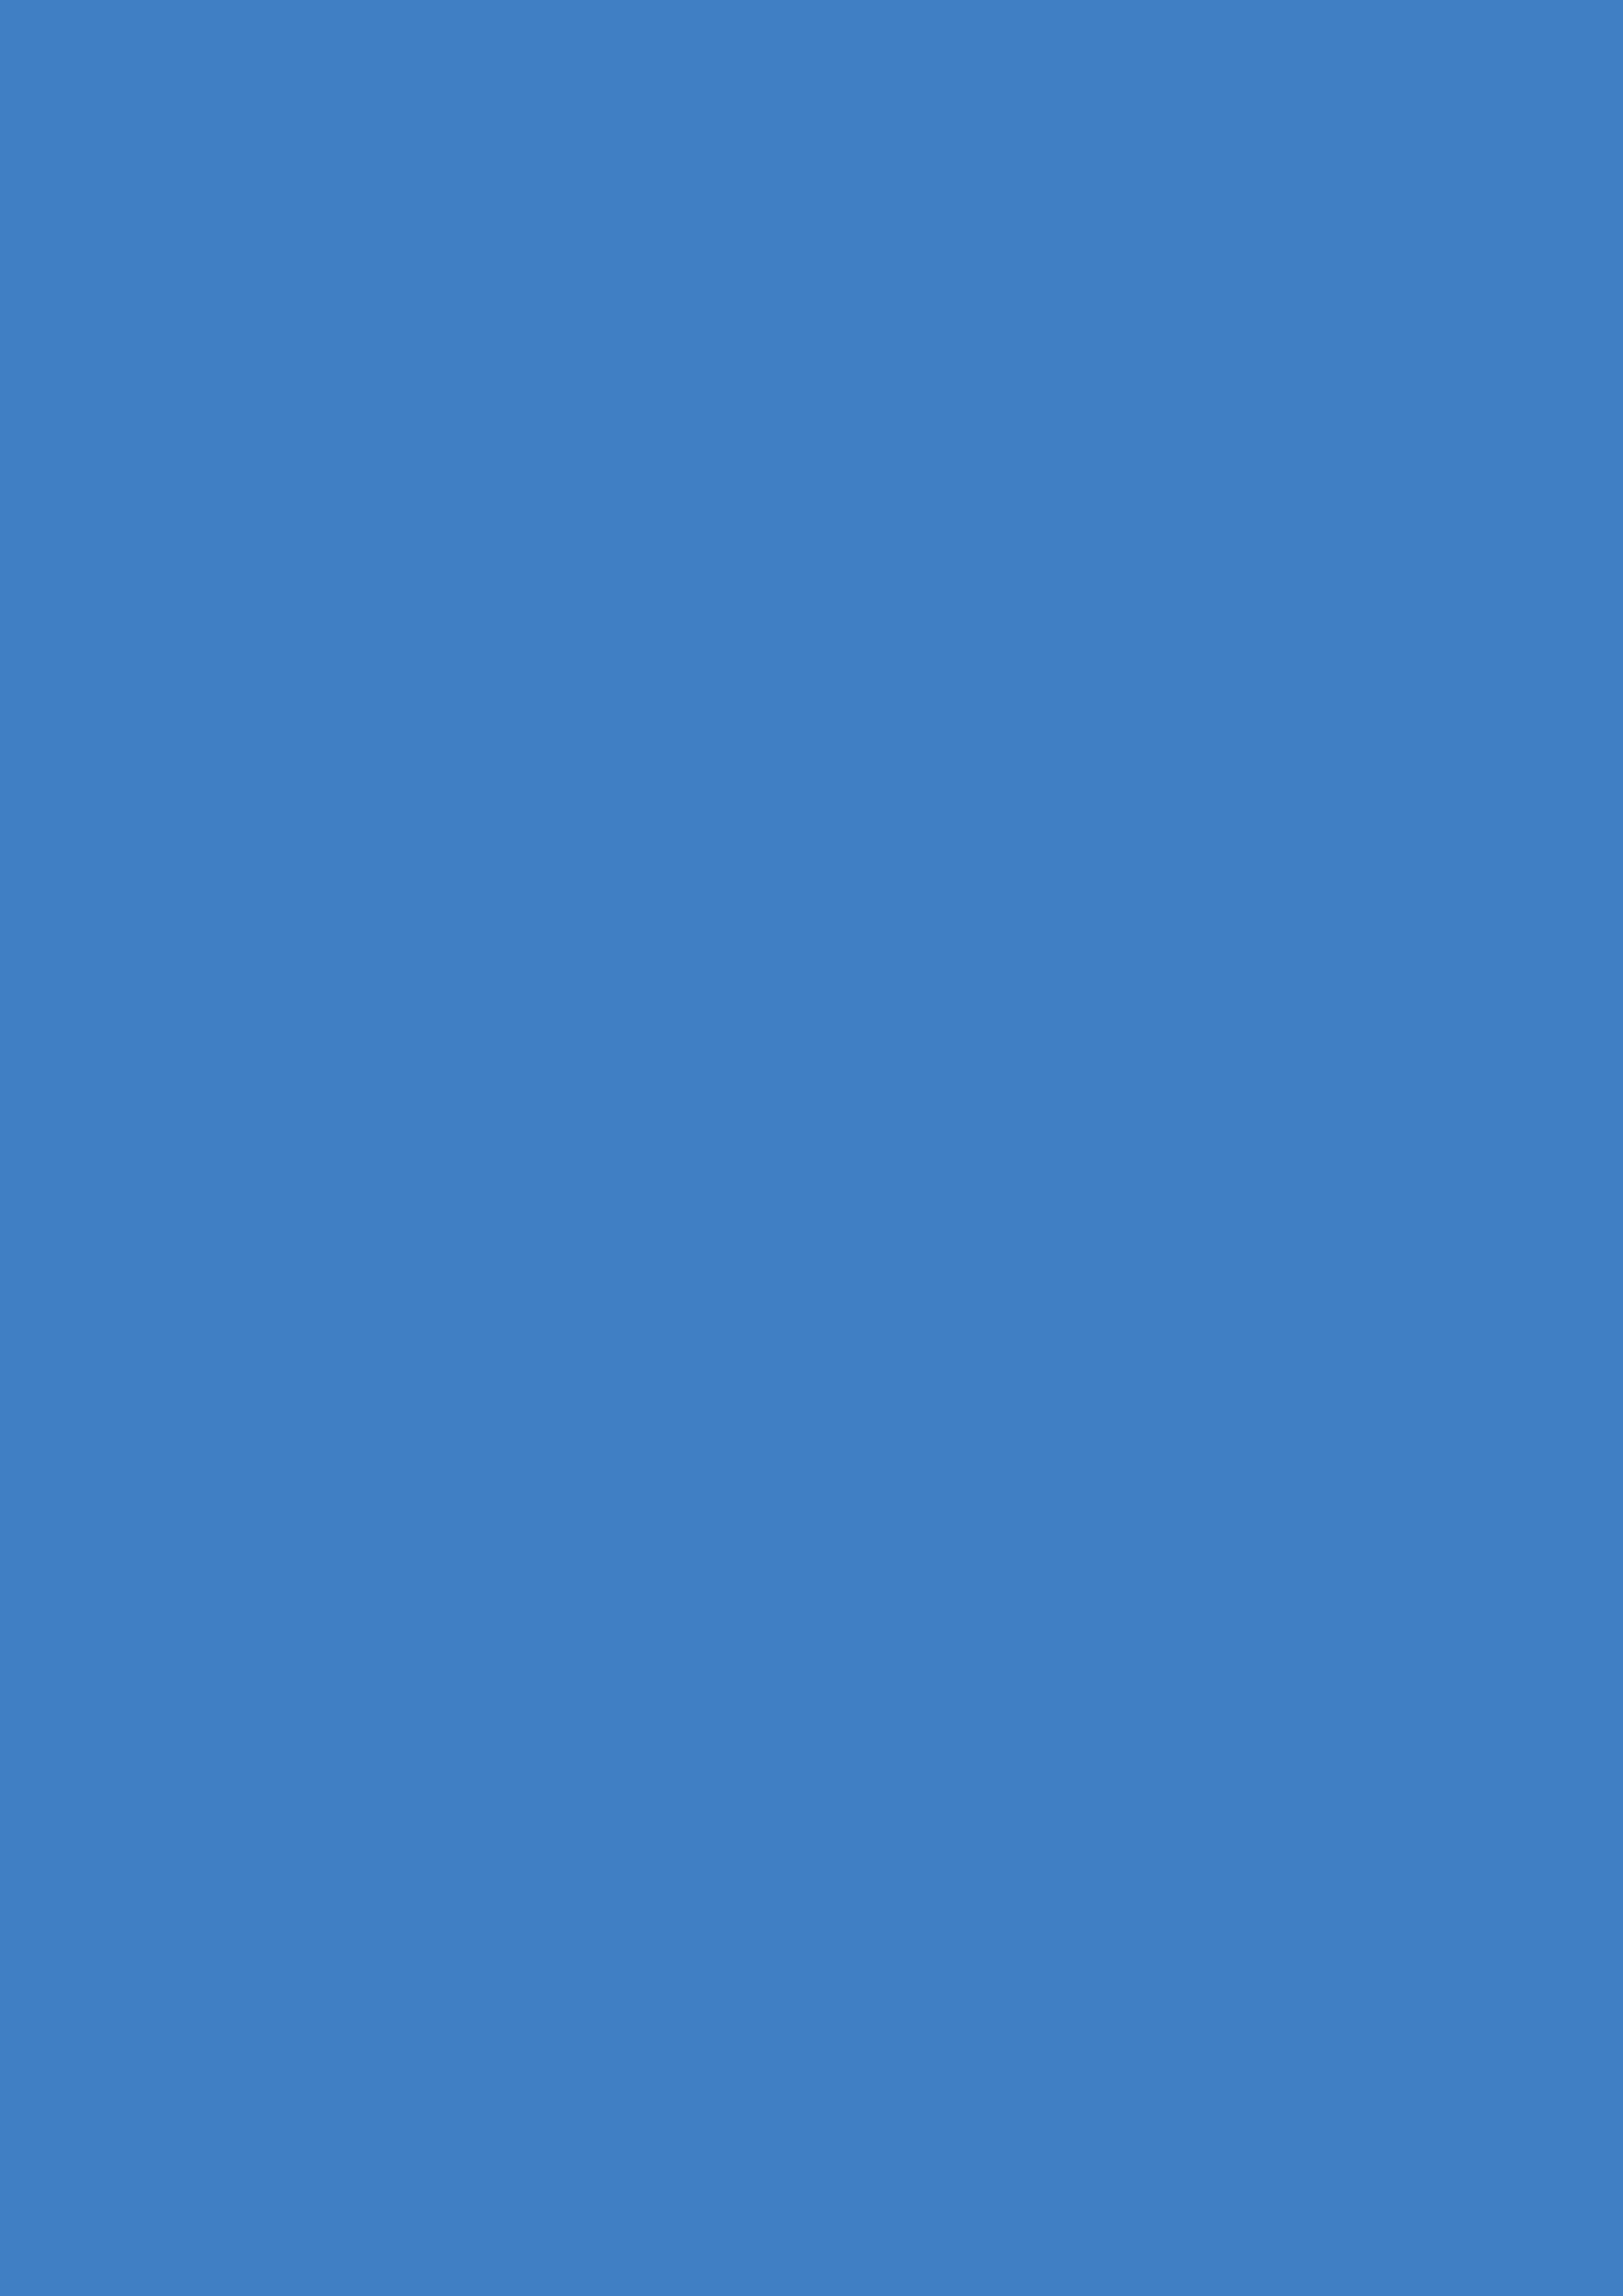 2480x3508 Tufts Blue Solid Color Background